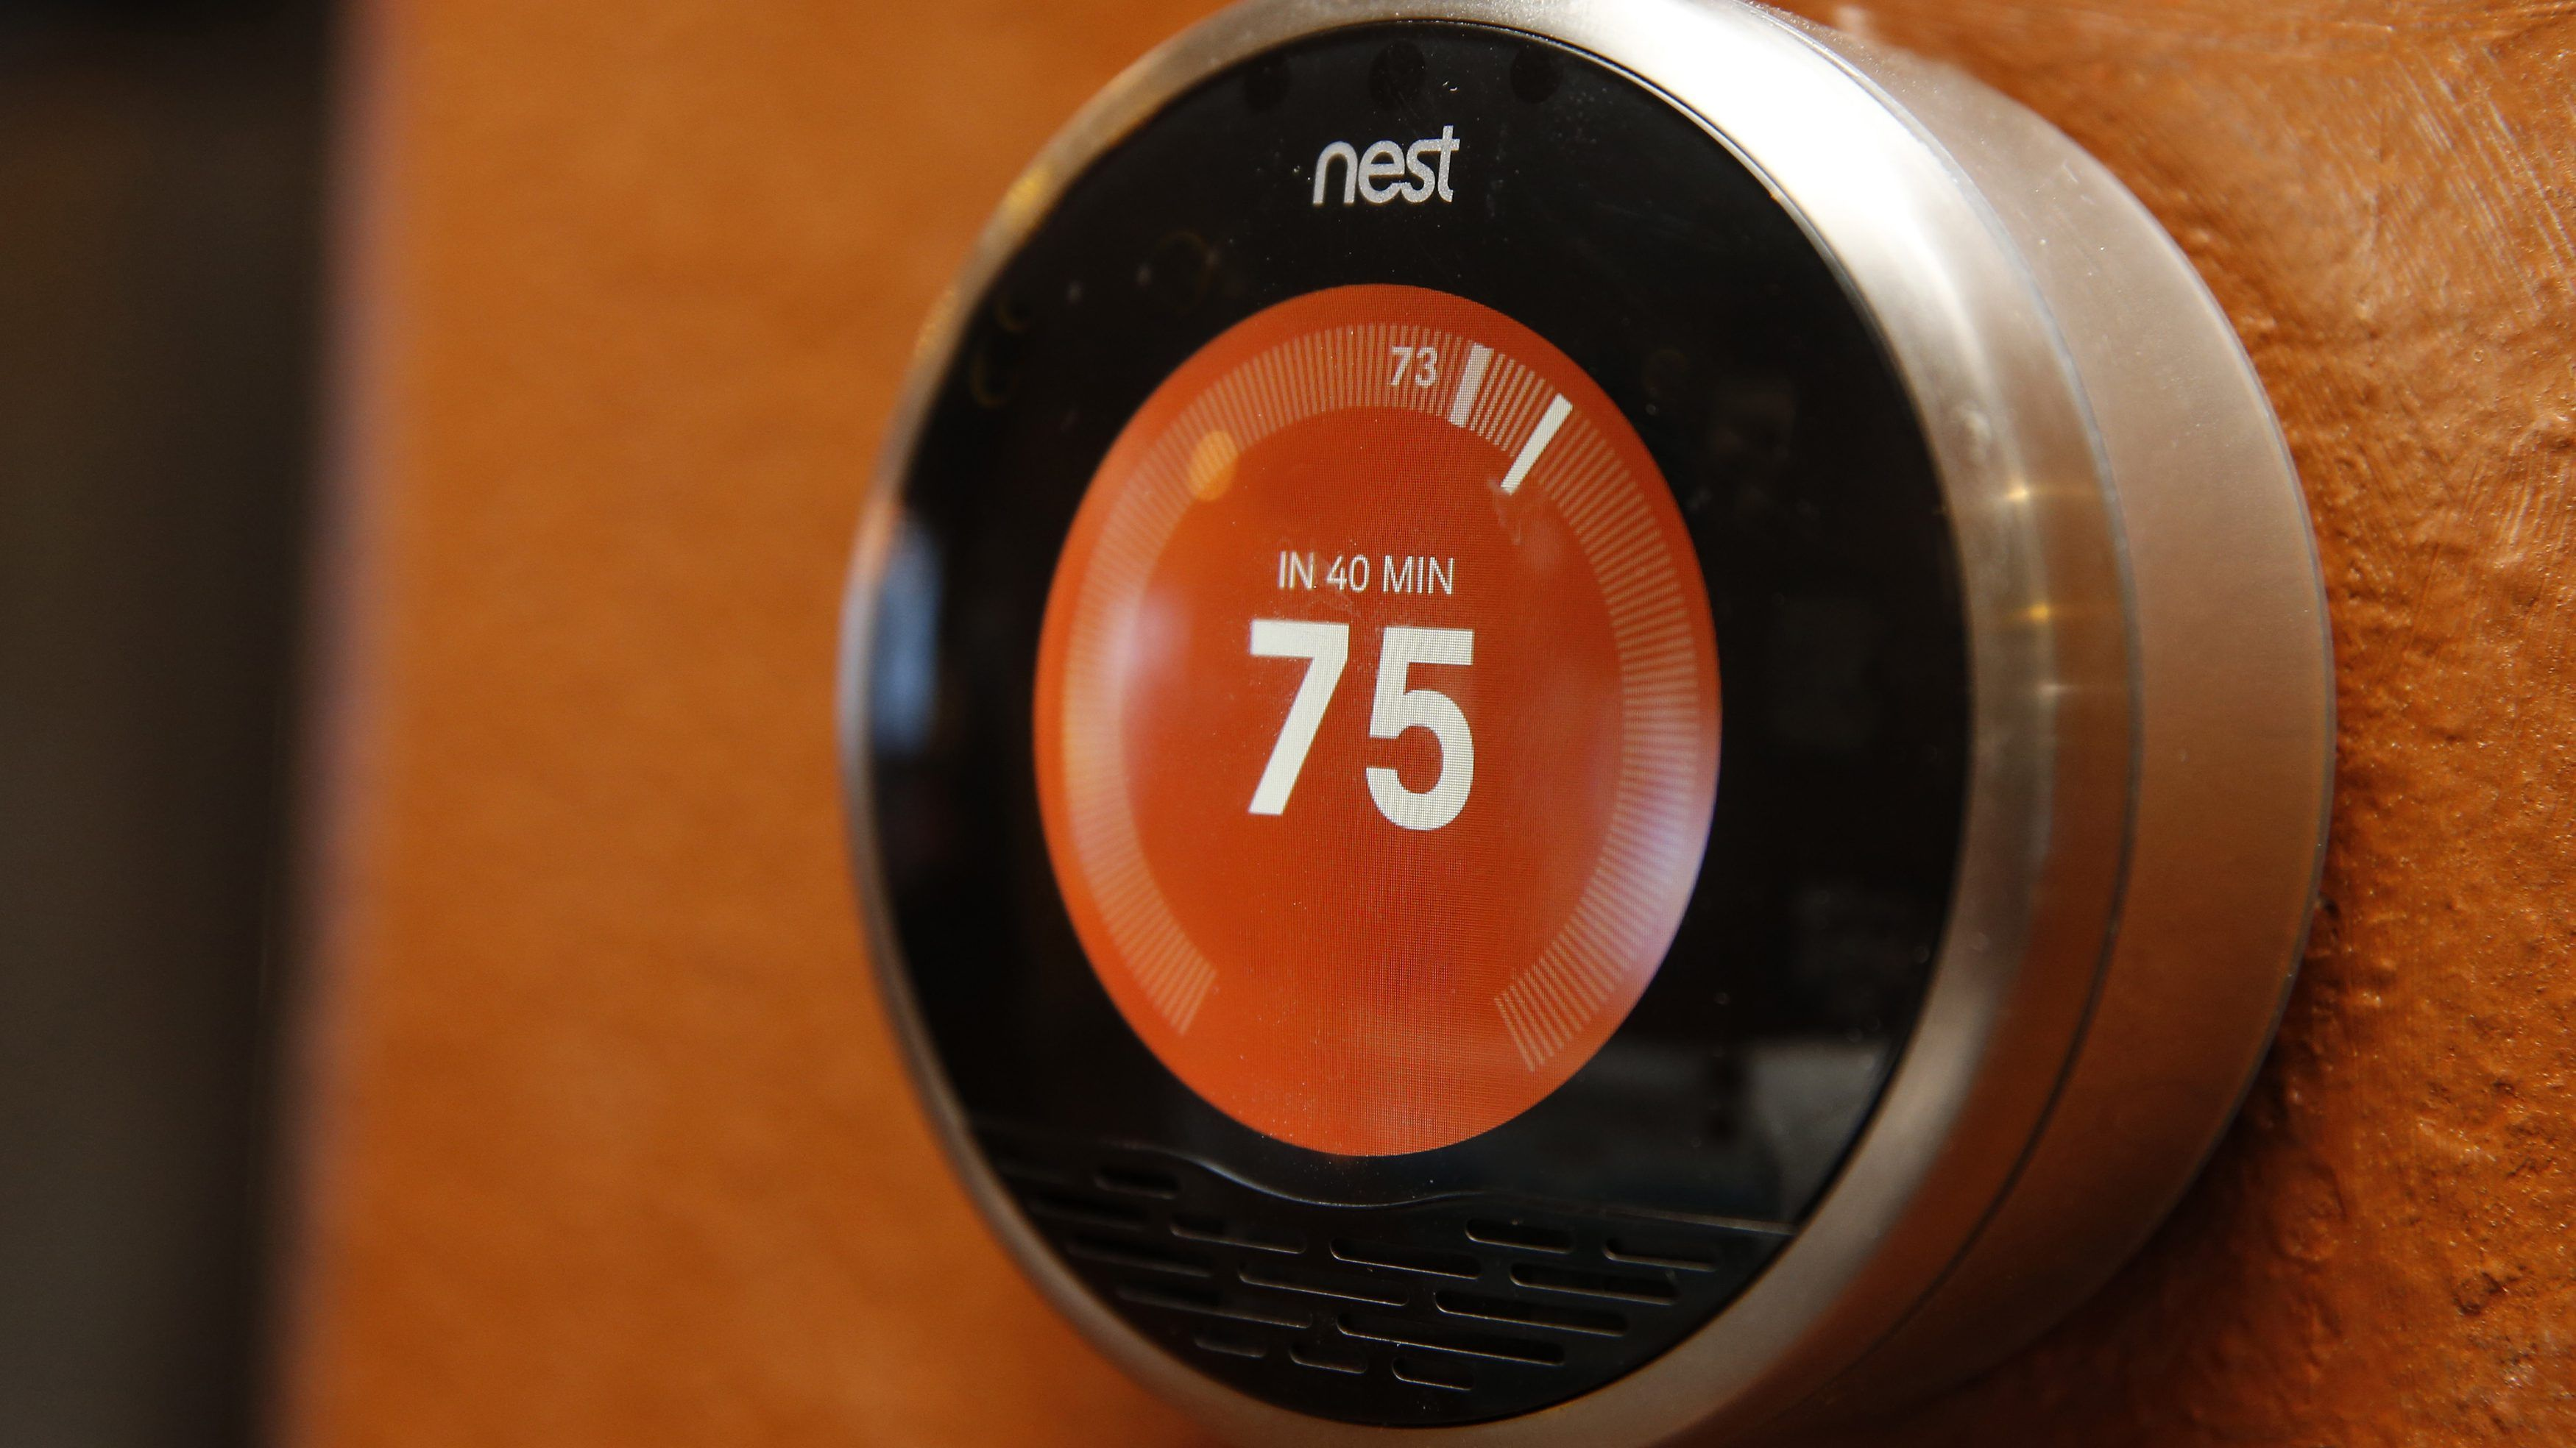 """A Nest thermostat is installed in a home in Provo, Utah, January 15, 2014. Google Inc took its biggest step to go deeper into consumers' homes, announcing a $3.2 billion deal January 13, 2014 to buy smart thermostat and smoke alarm-maker Nest Labs Inc, scooping up a promising line of products and a prized design team led by the """"godfather"""" of the iPod.  REUTERS/George Frey  (UNITED STATES - Tags: BUSINESS SCIENCE TECHNOLOGY) - TM4EA1F132U01"""